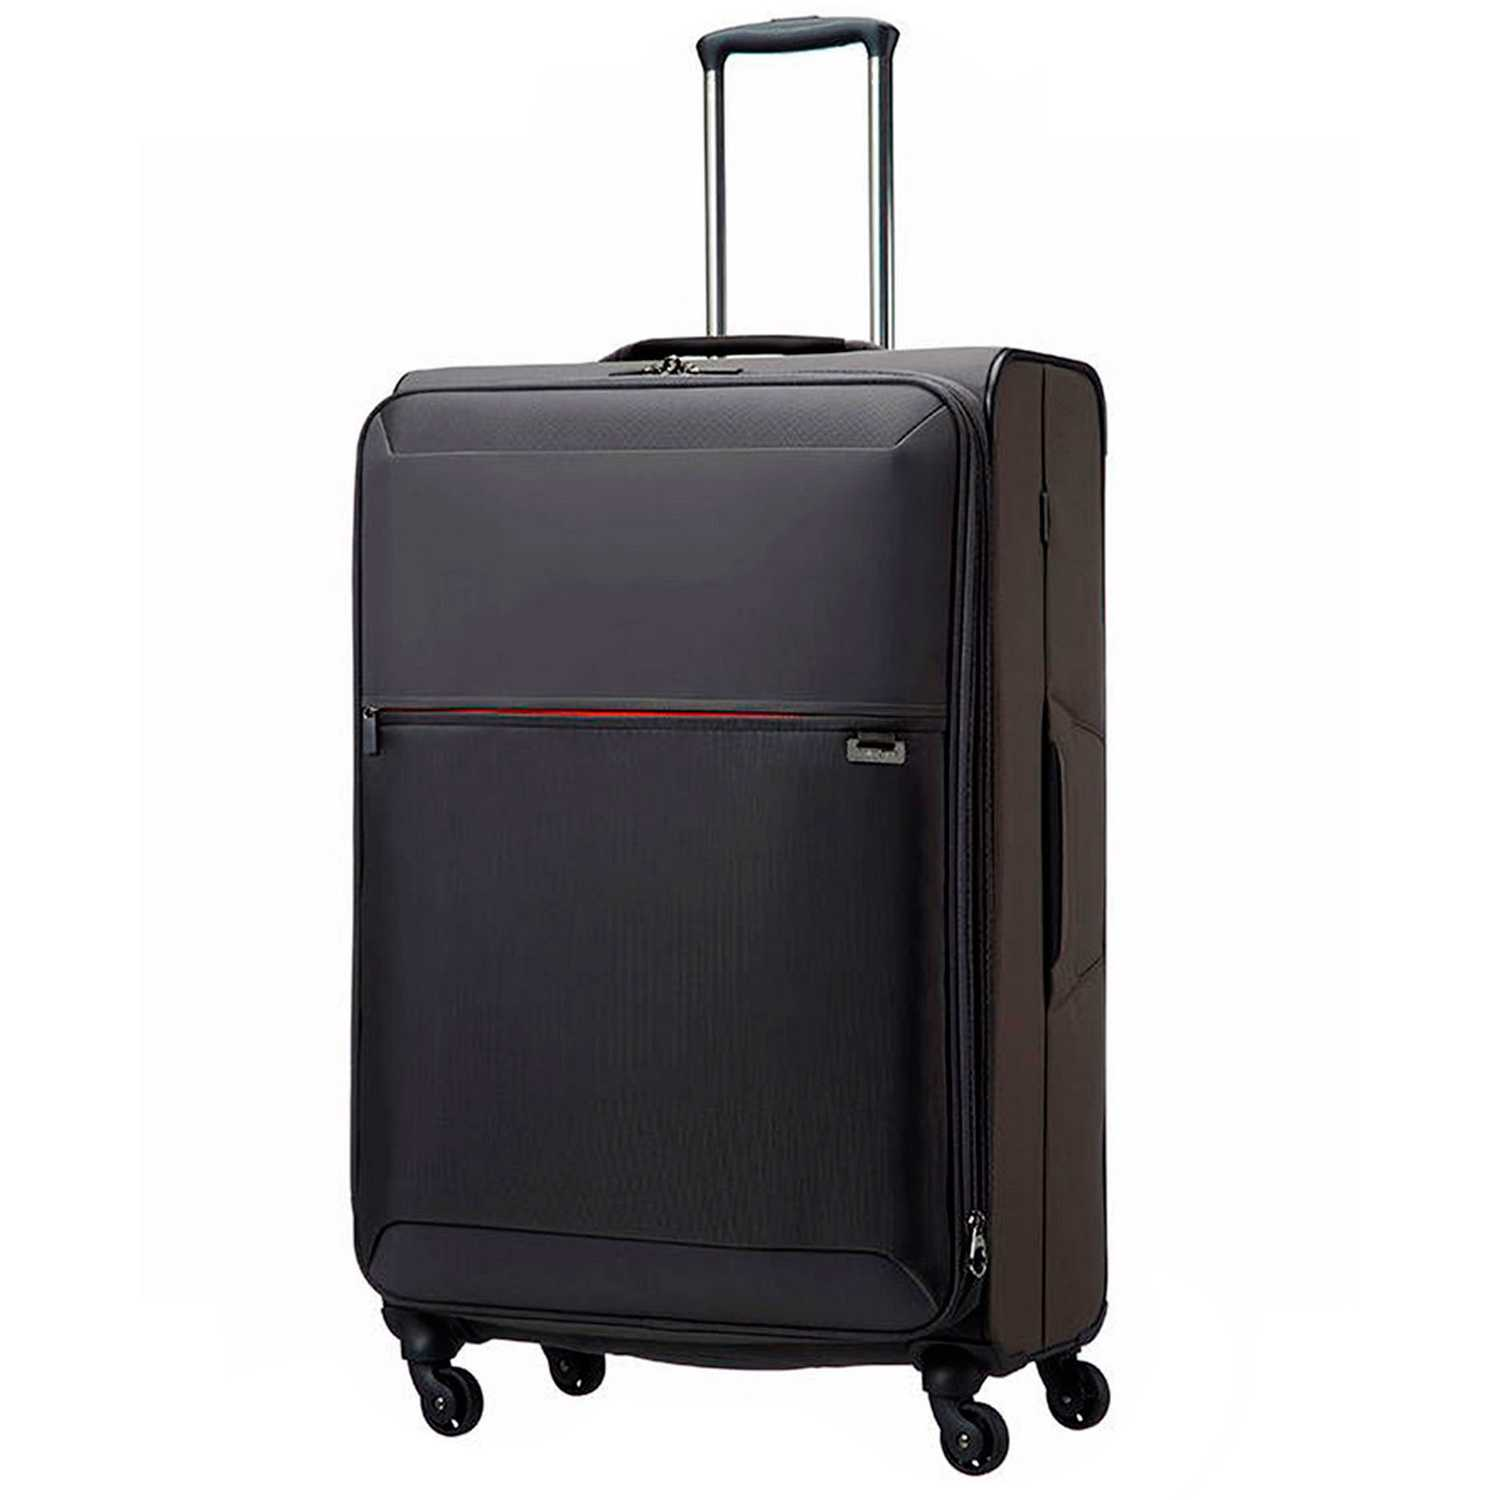 Samsonite spinner 67/24pulg exp black samsonite superlite Negro Portafolios